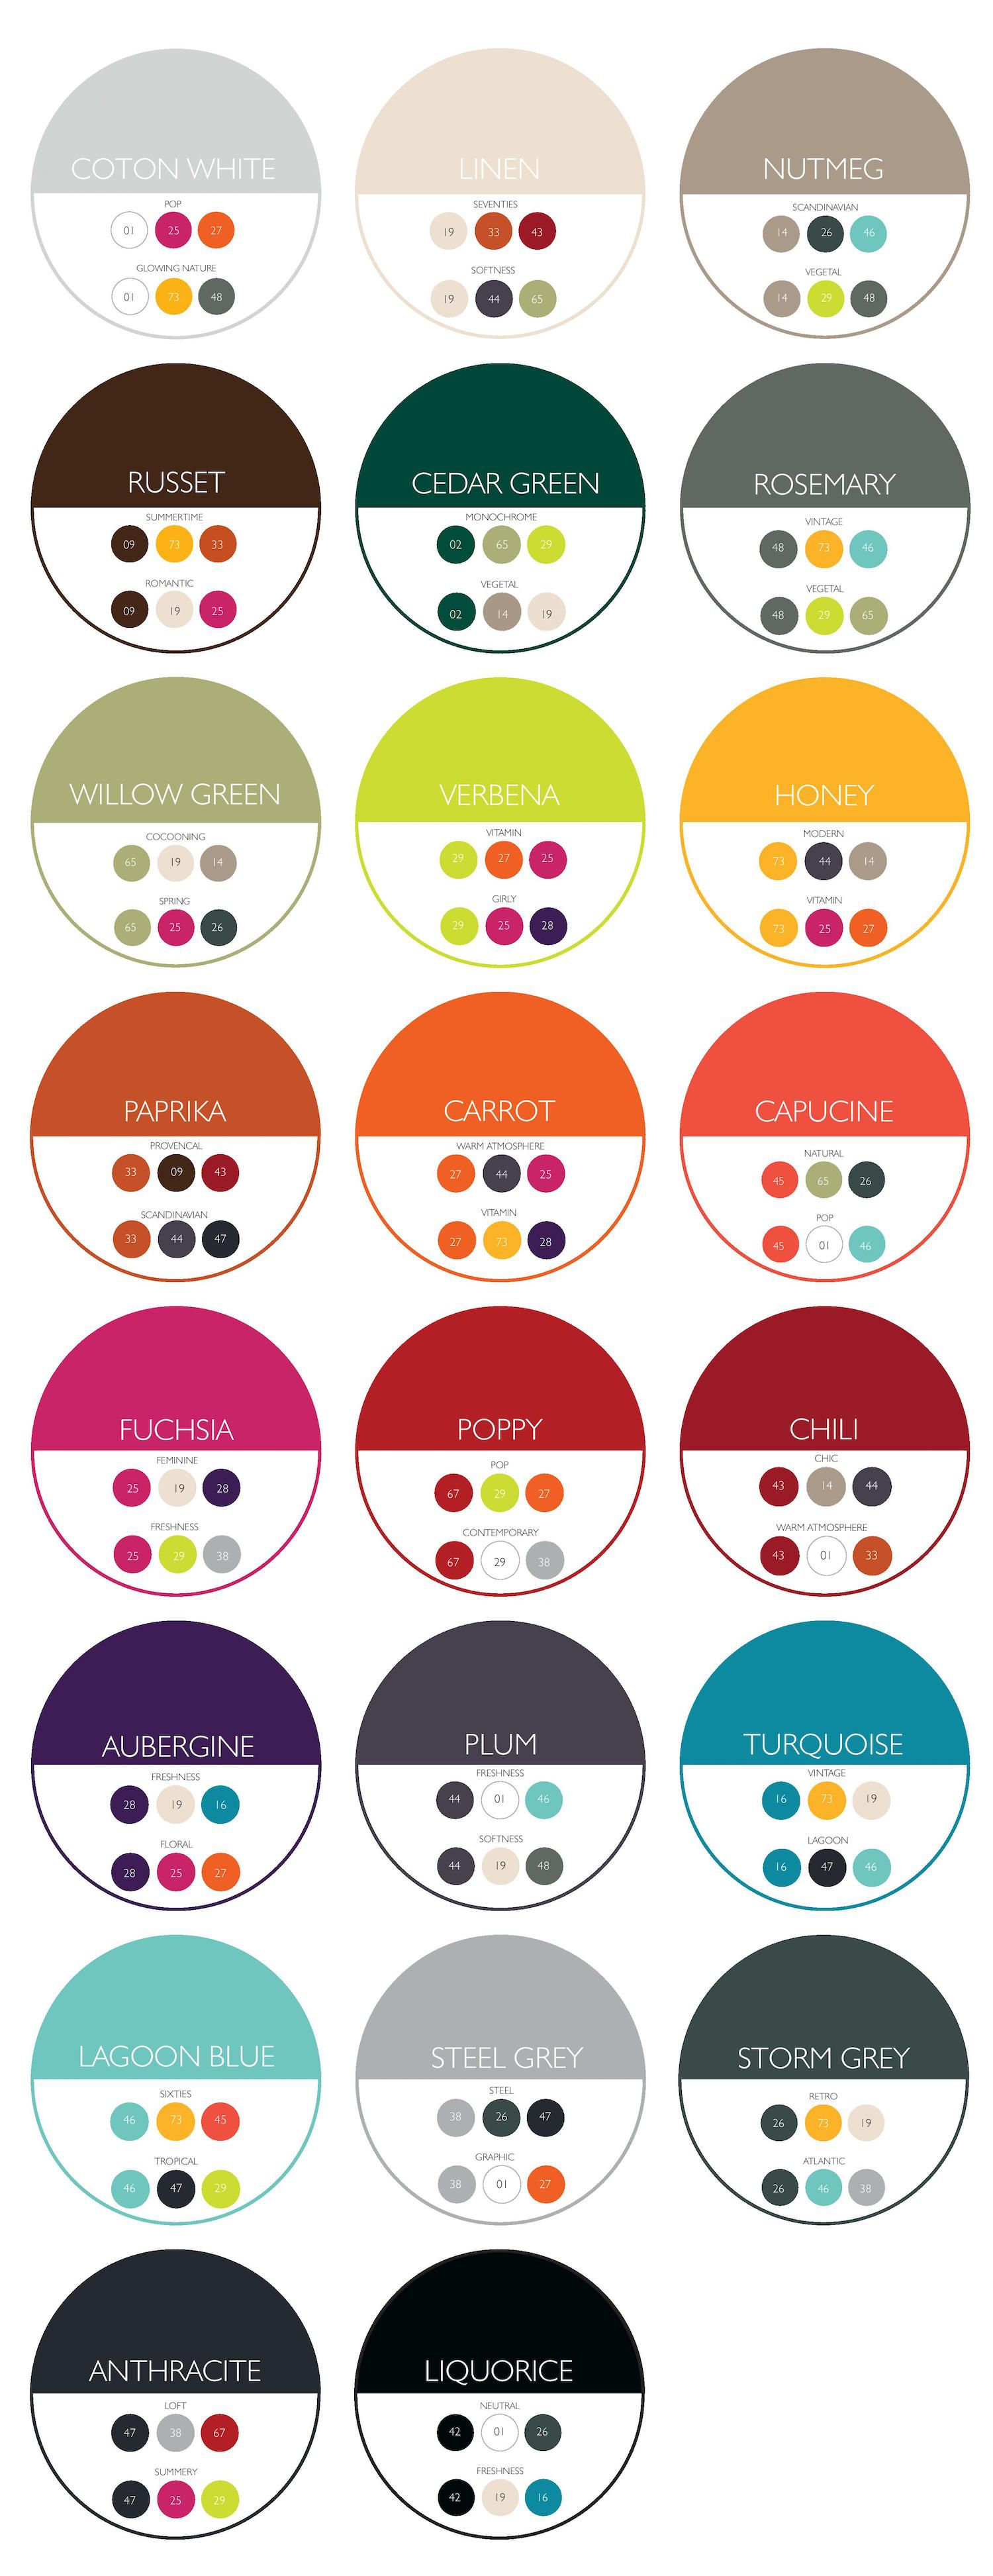 Top modern bungalow design chart color combos and color inspiration 2016 fermob color combination chart which colors look best with each other design nvjuhfo Image collections